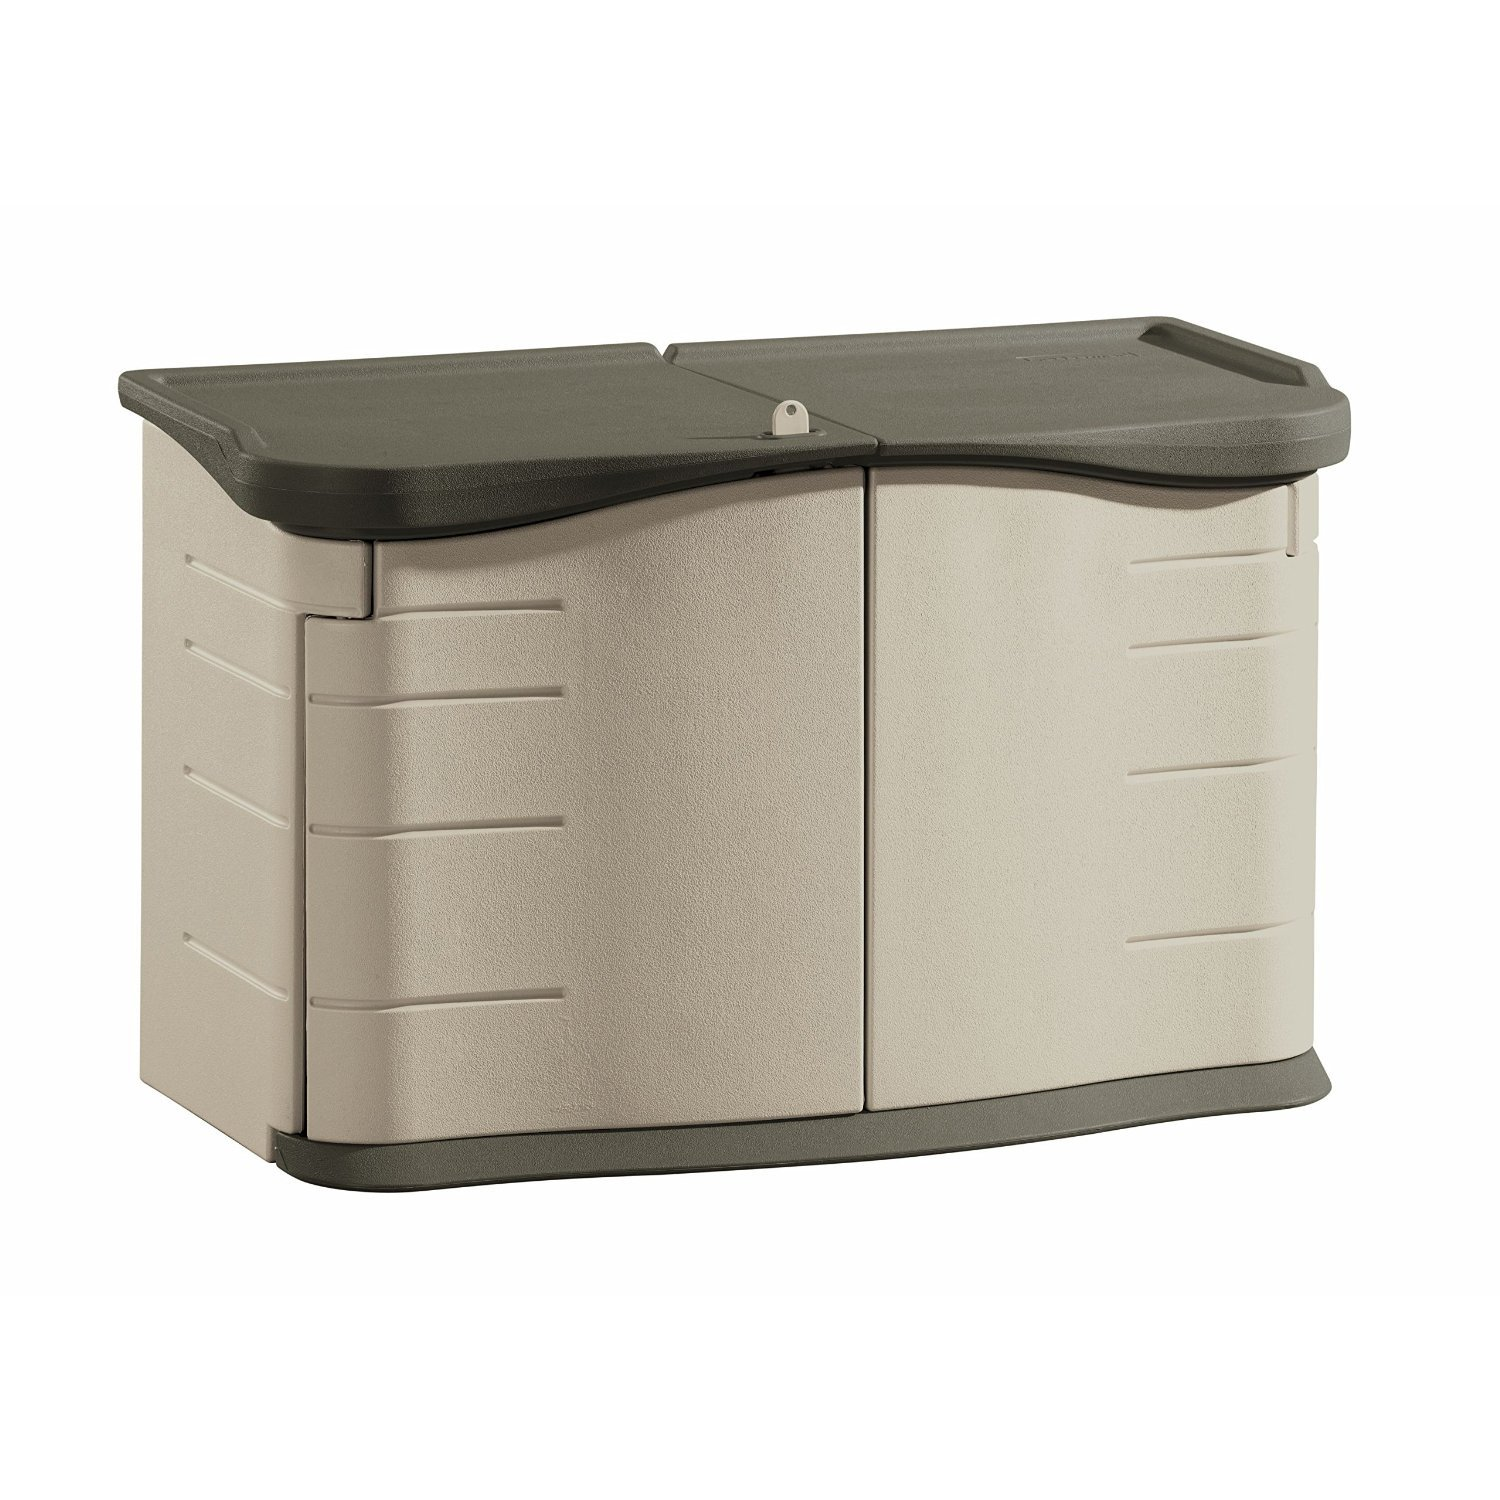 Etonnant Amazon.com : Rubbermaid Outdoor Split Lid Storage Shed, 18 Cu. Ft.,  Olive/Sandstone (FG375301OLVSS0) : Outdoor Storage Containers : Garden U0026  Outdoor